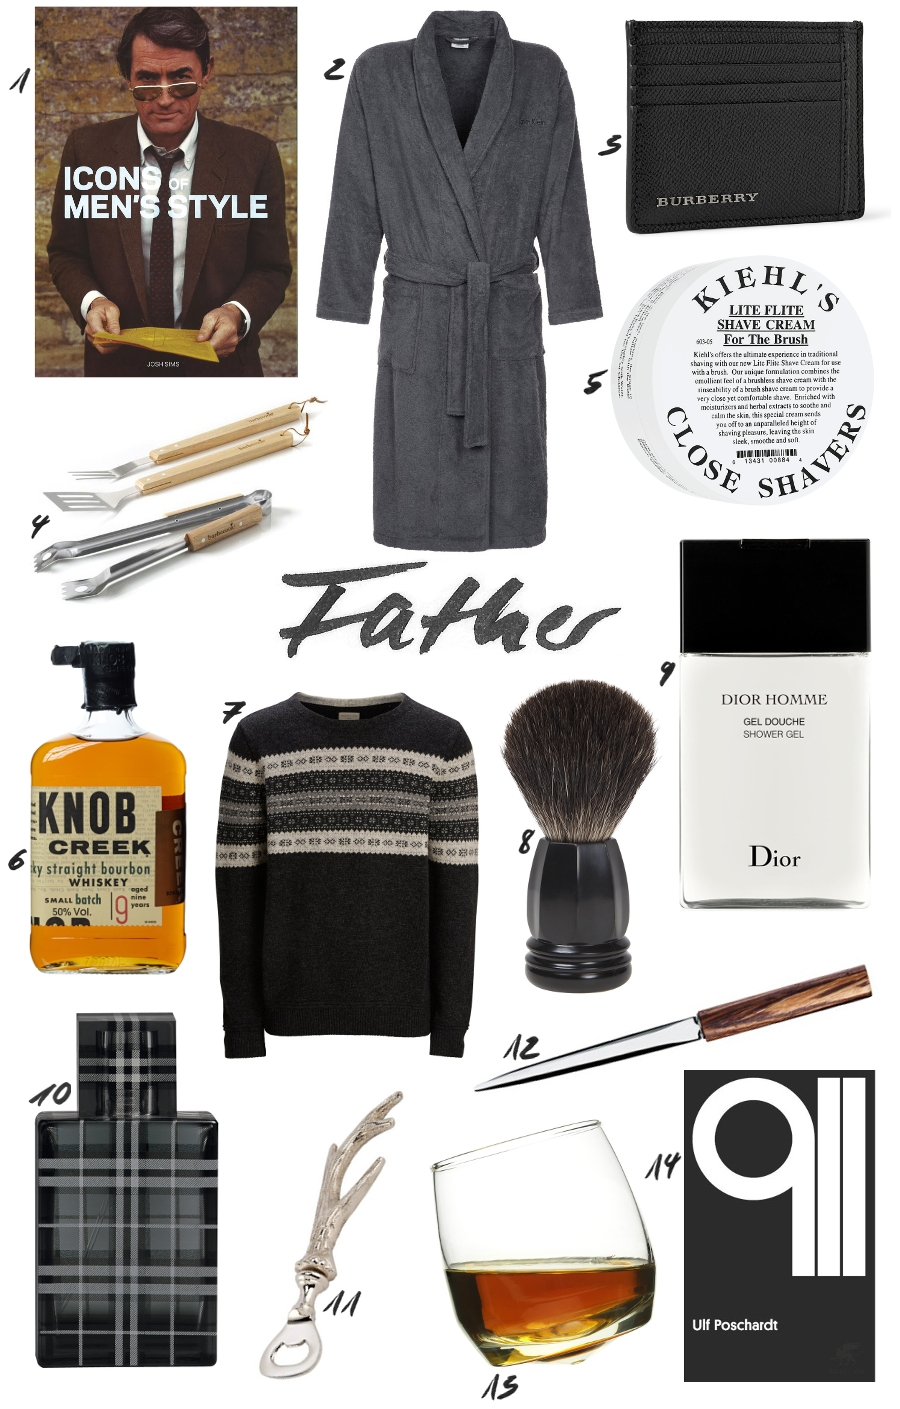 10 Famous Christmas Present Ideas For Dad